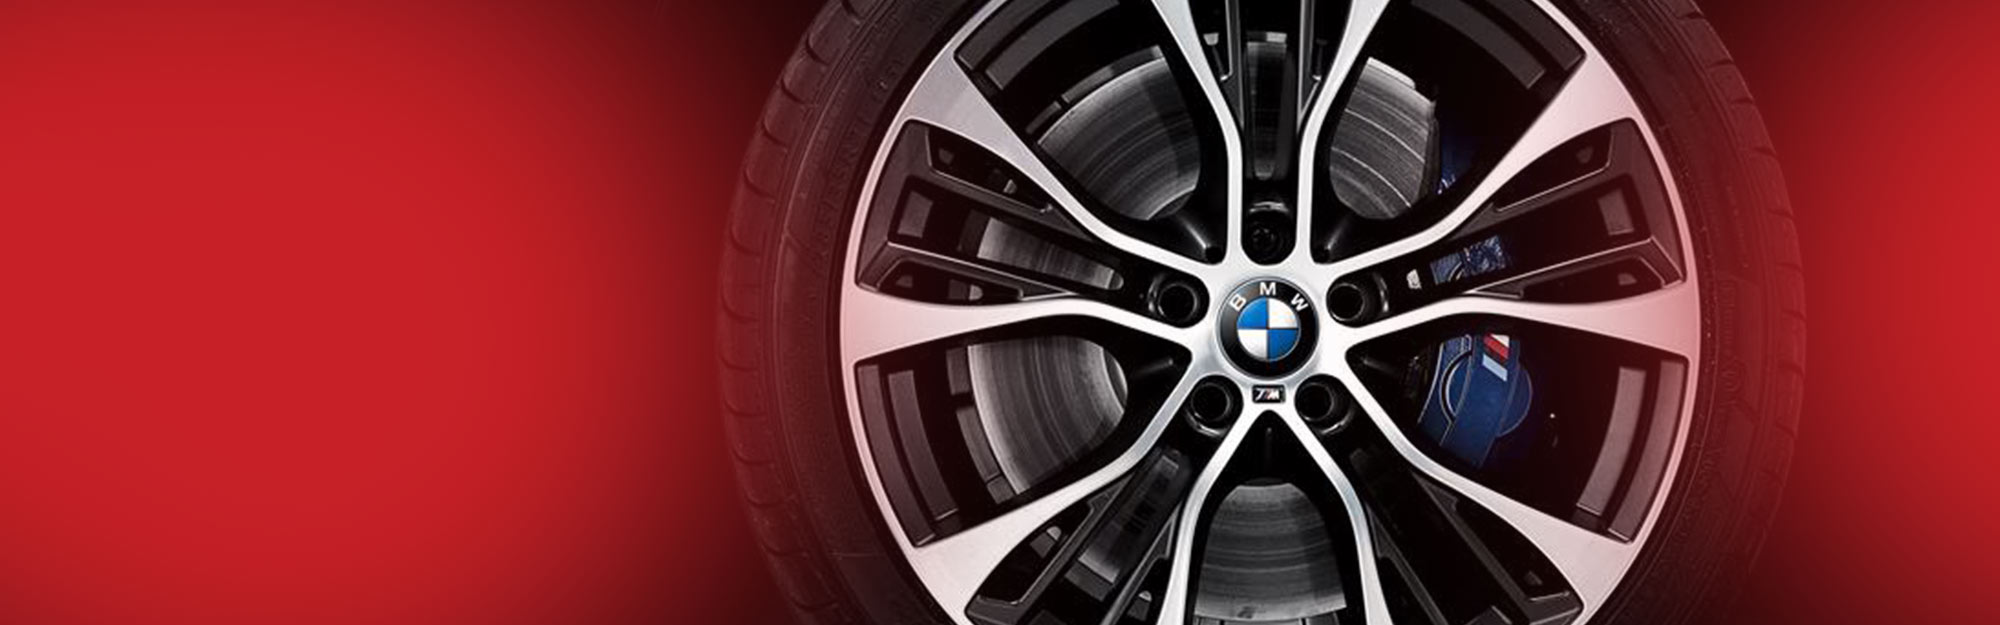 Alloy-wheel-banner -Accident Repair centre